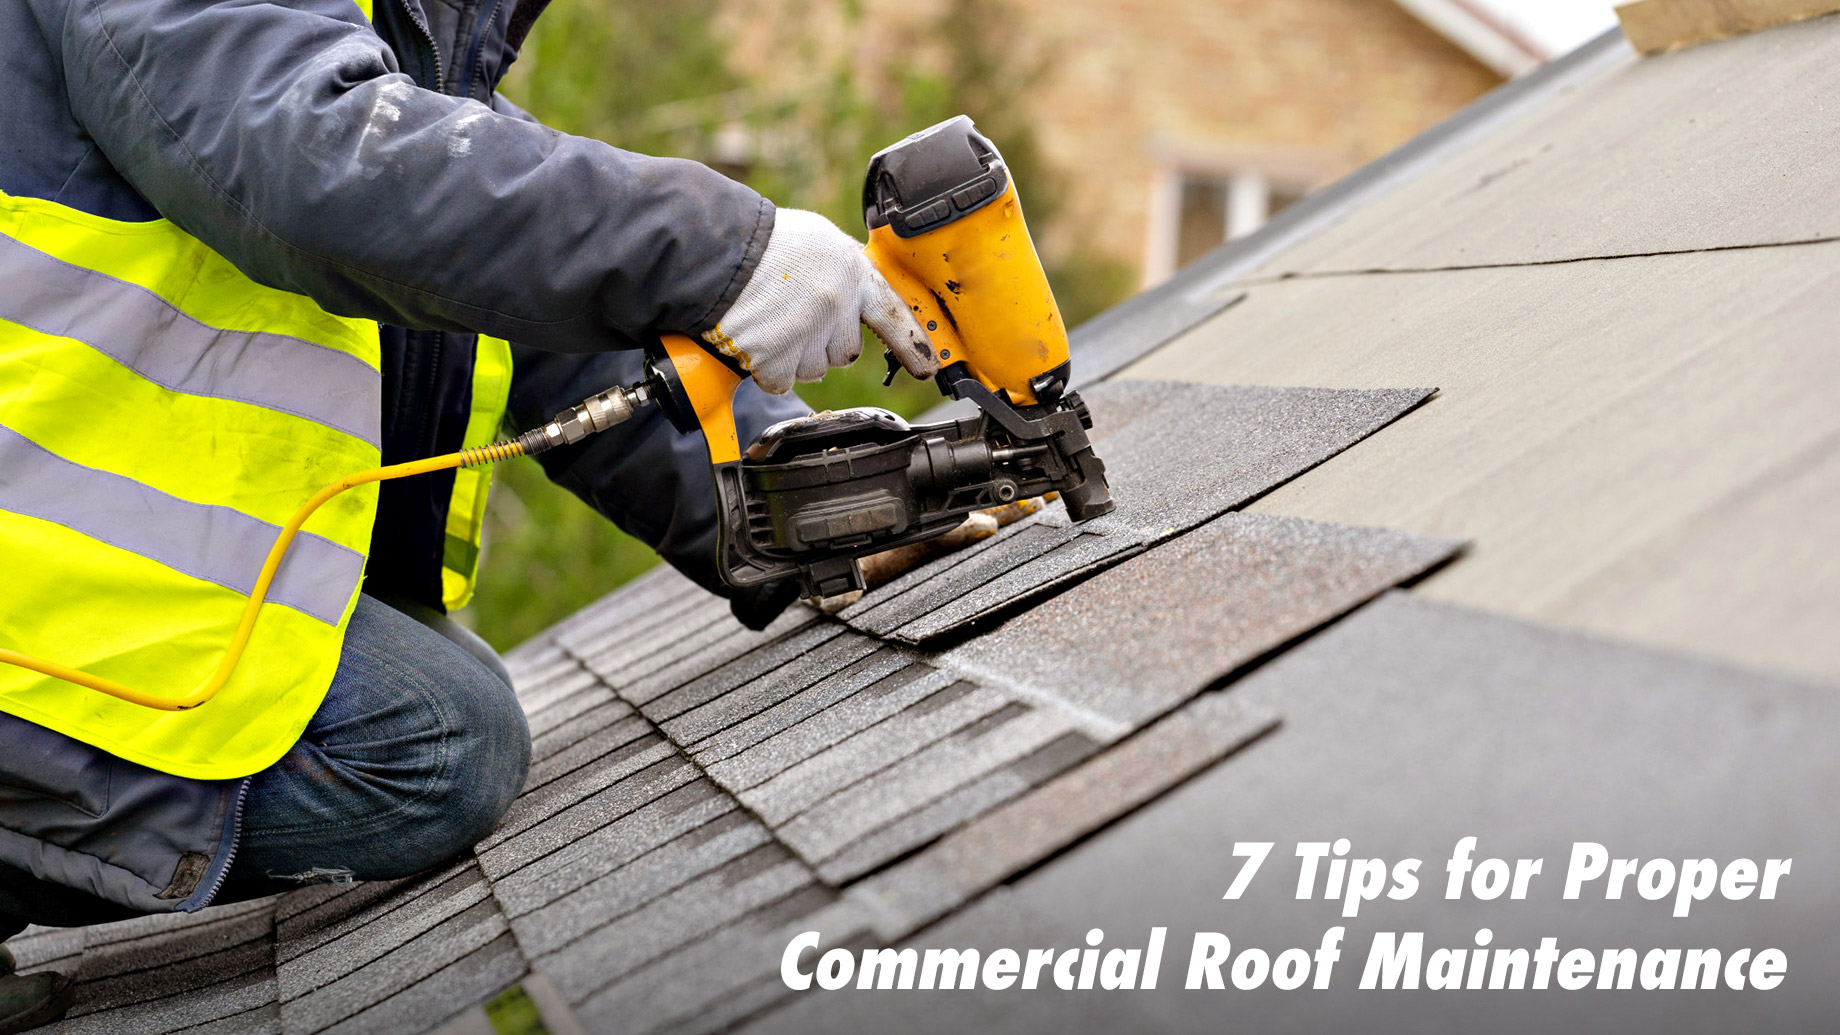 7 Tips for Proper Commercial Roof Maintenance